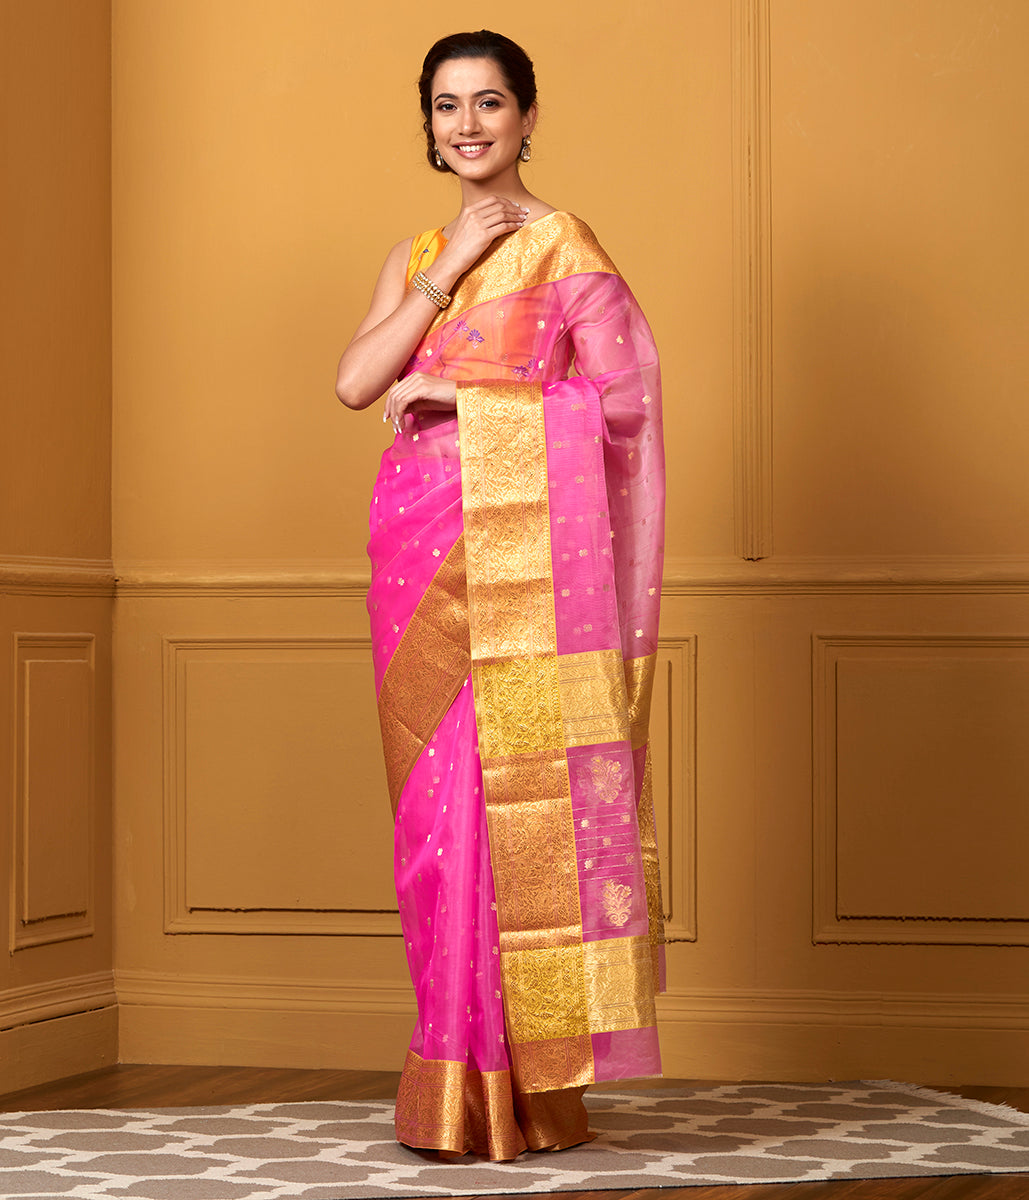 Handwoven Pink Kora Katan Chanderi Saree with Mustard Border